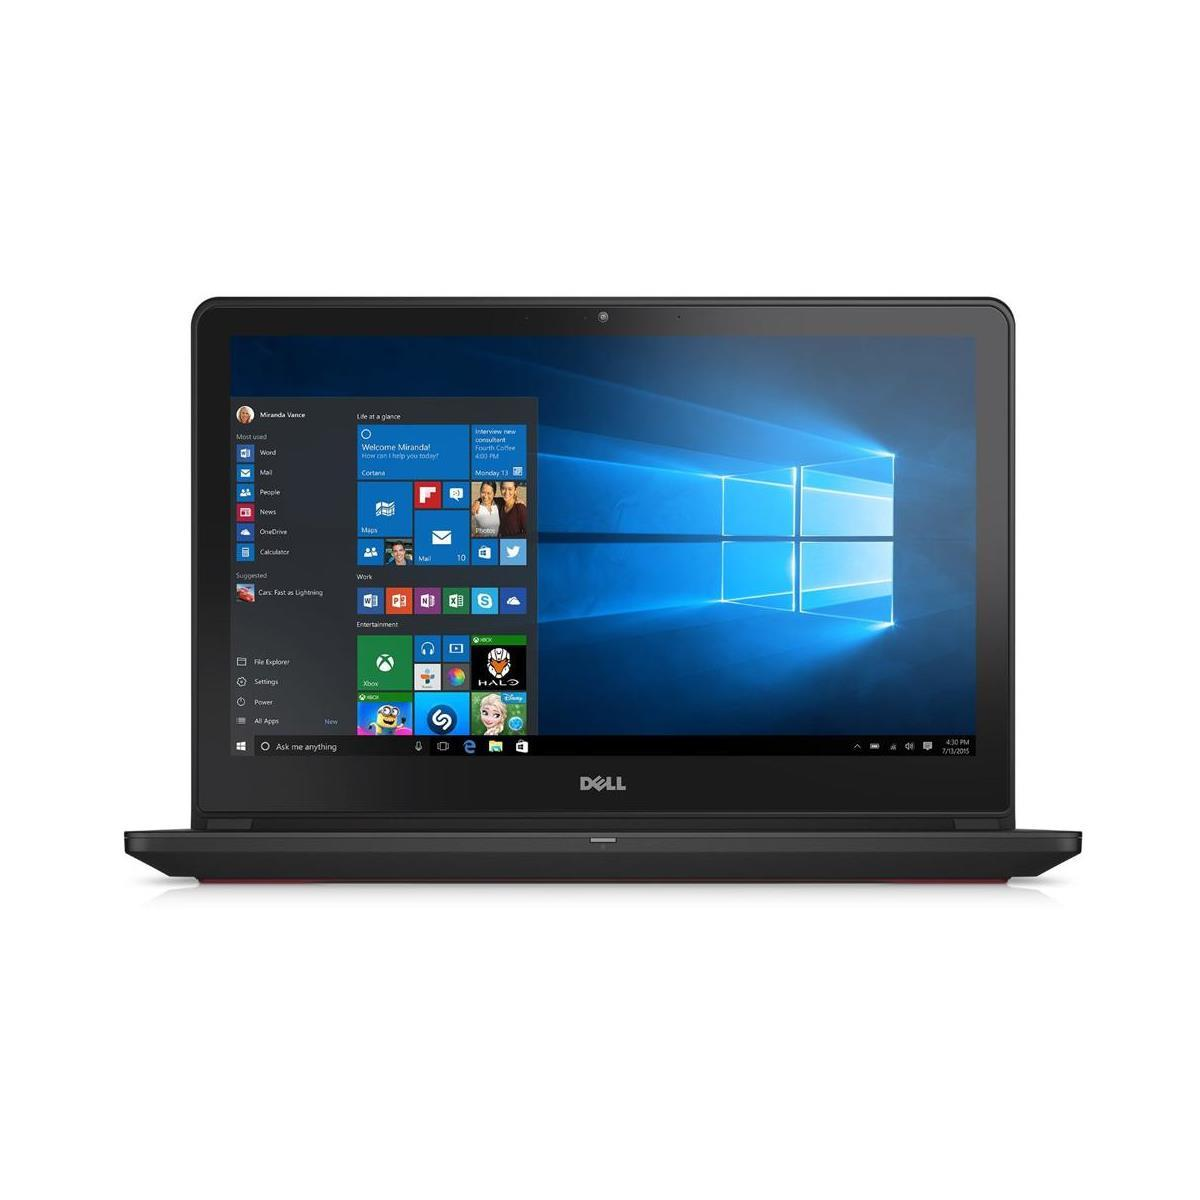 Dell Inspiron 15 7000 I7559-3762GRY 4K Laptop(i5 6300, 8 GB, 1 TB SSHD, 960M)